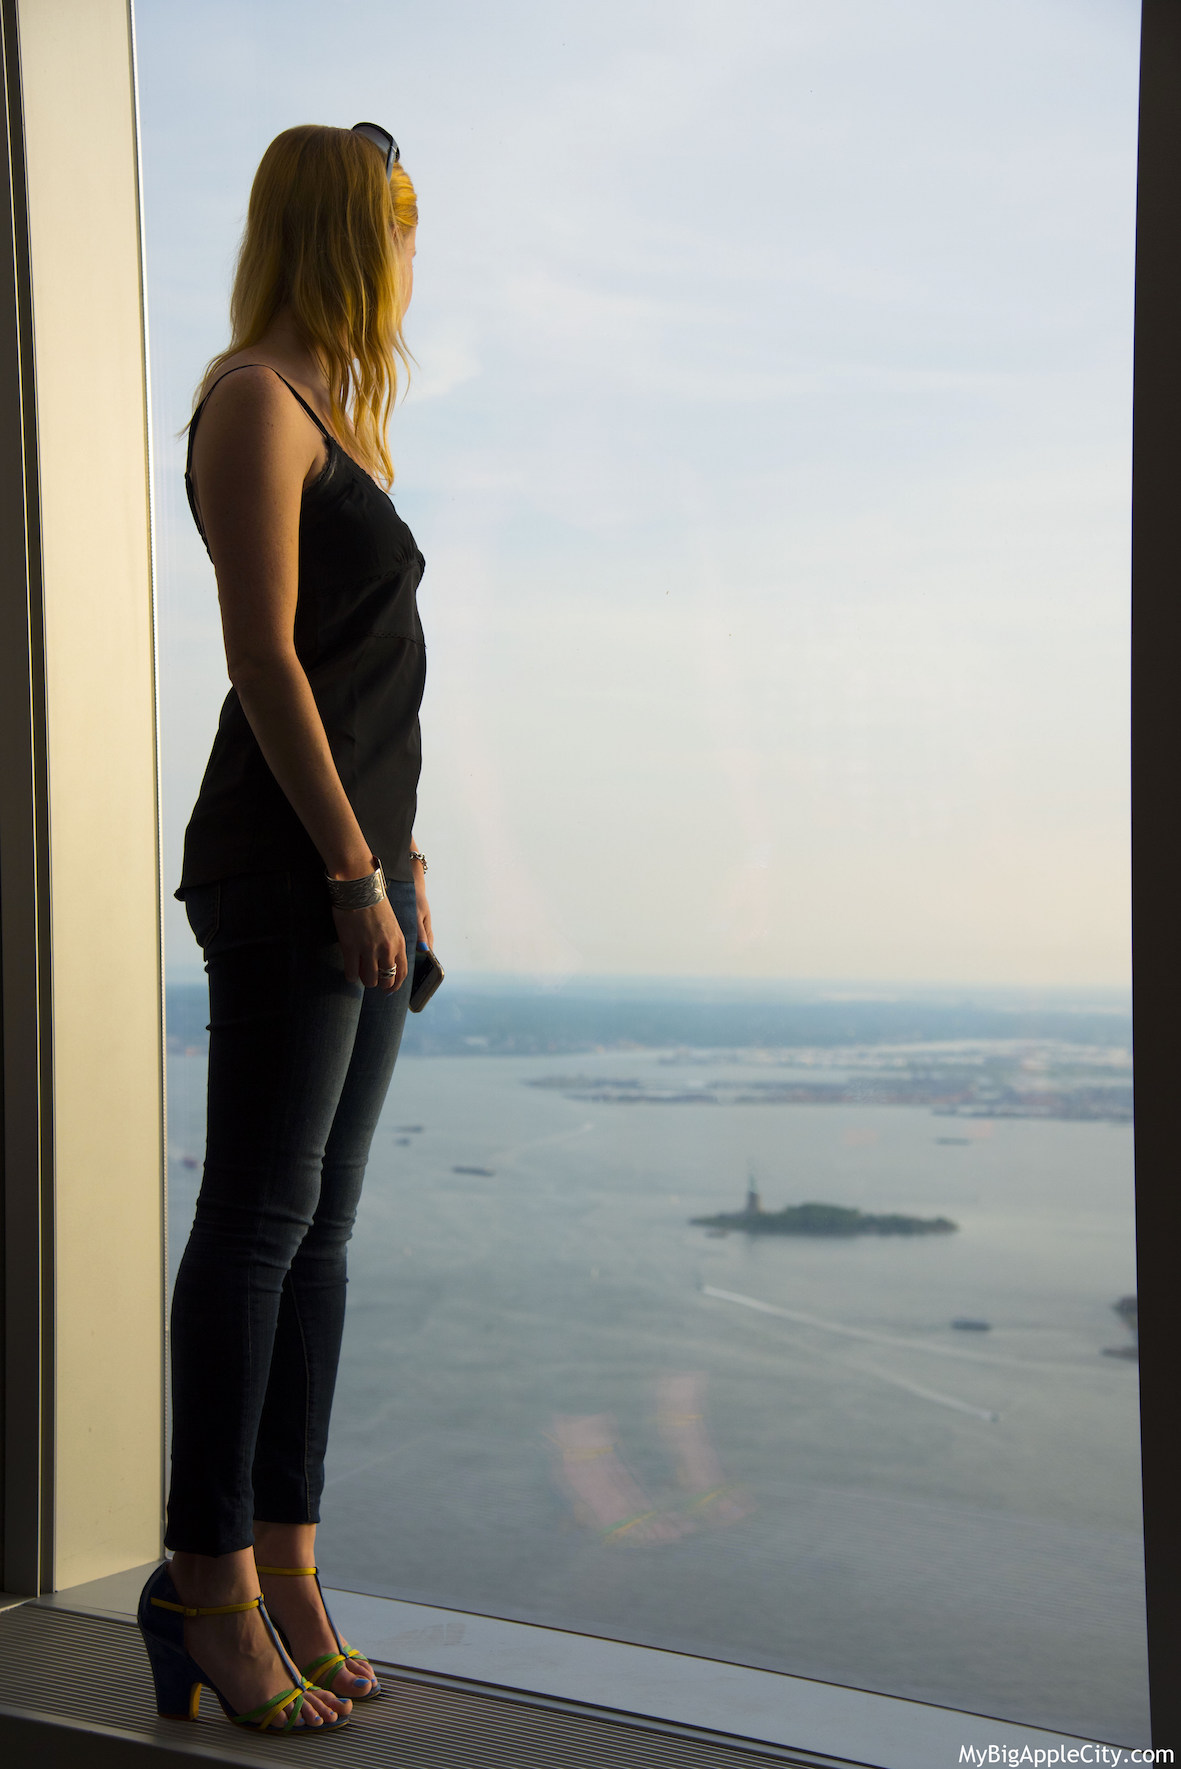 One-WTC-Freedom-Fashion-blogger-MyBigAppleCity-NYC